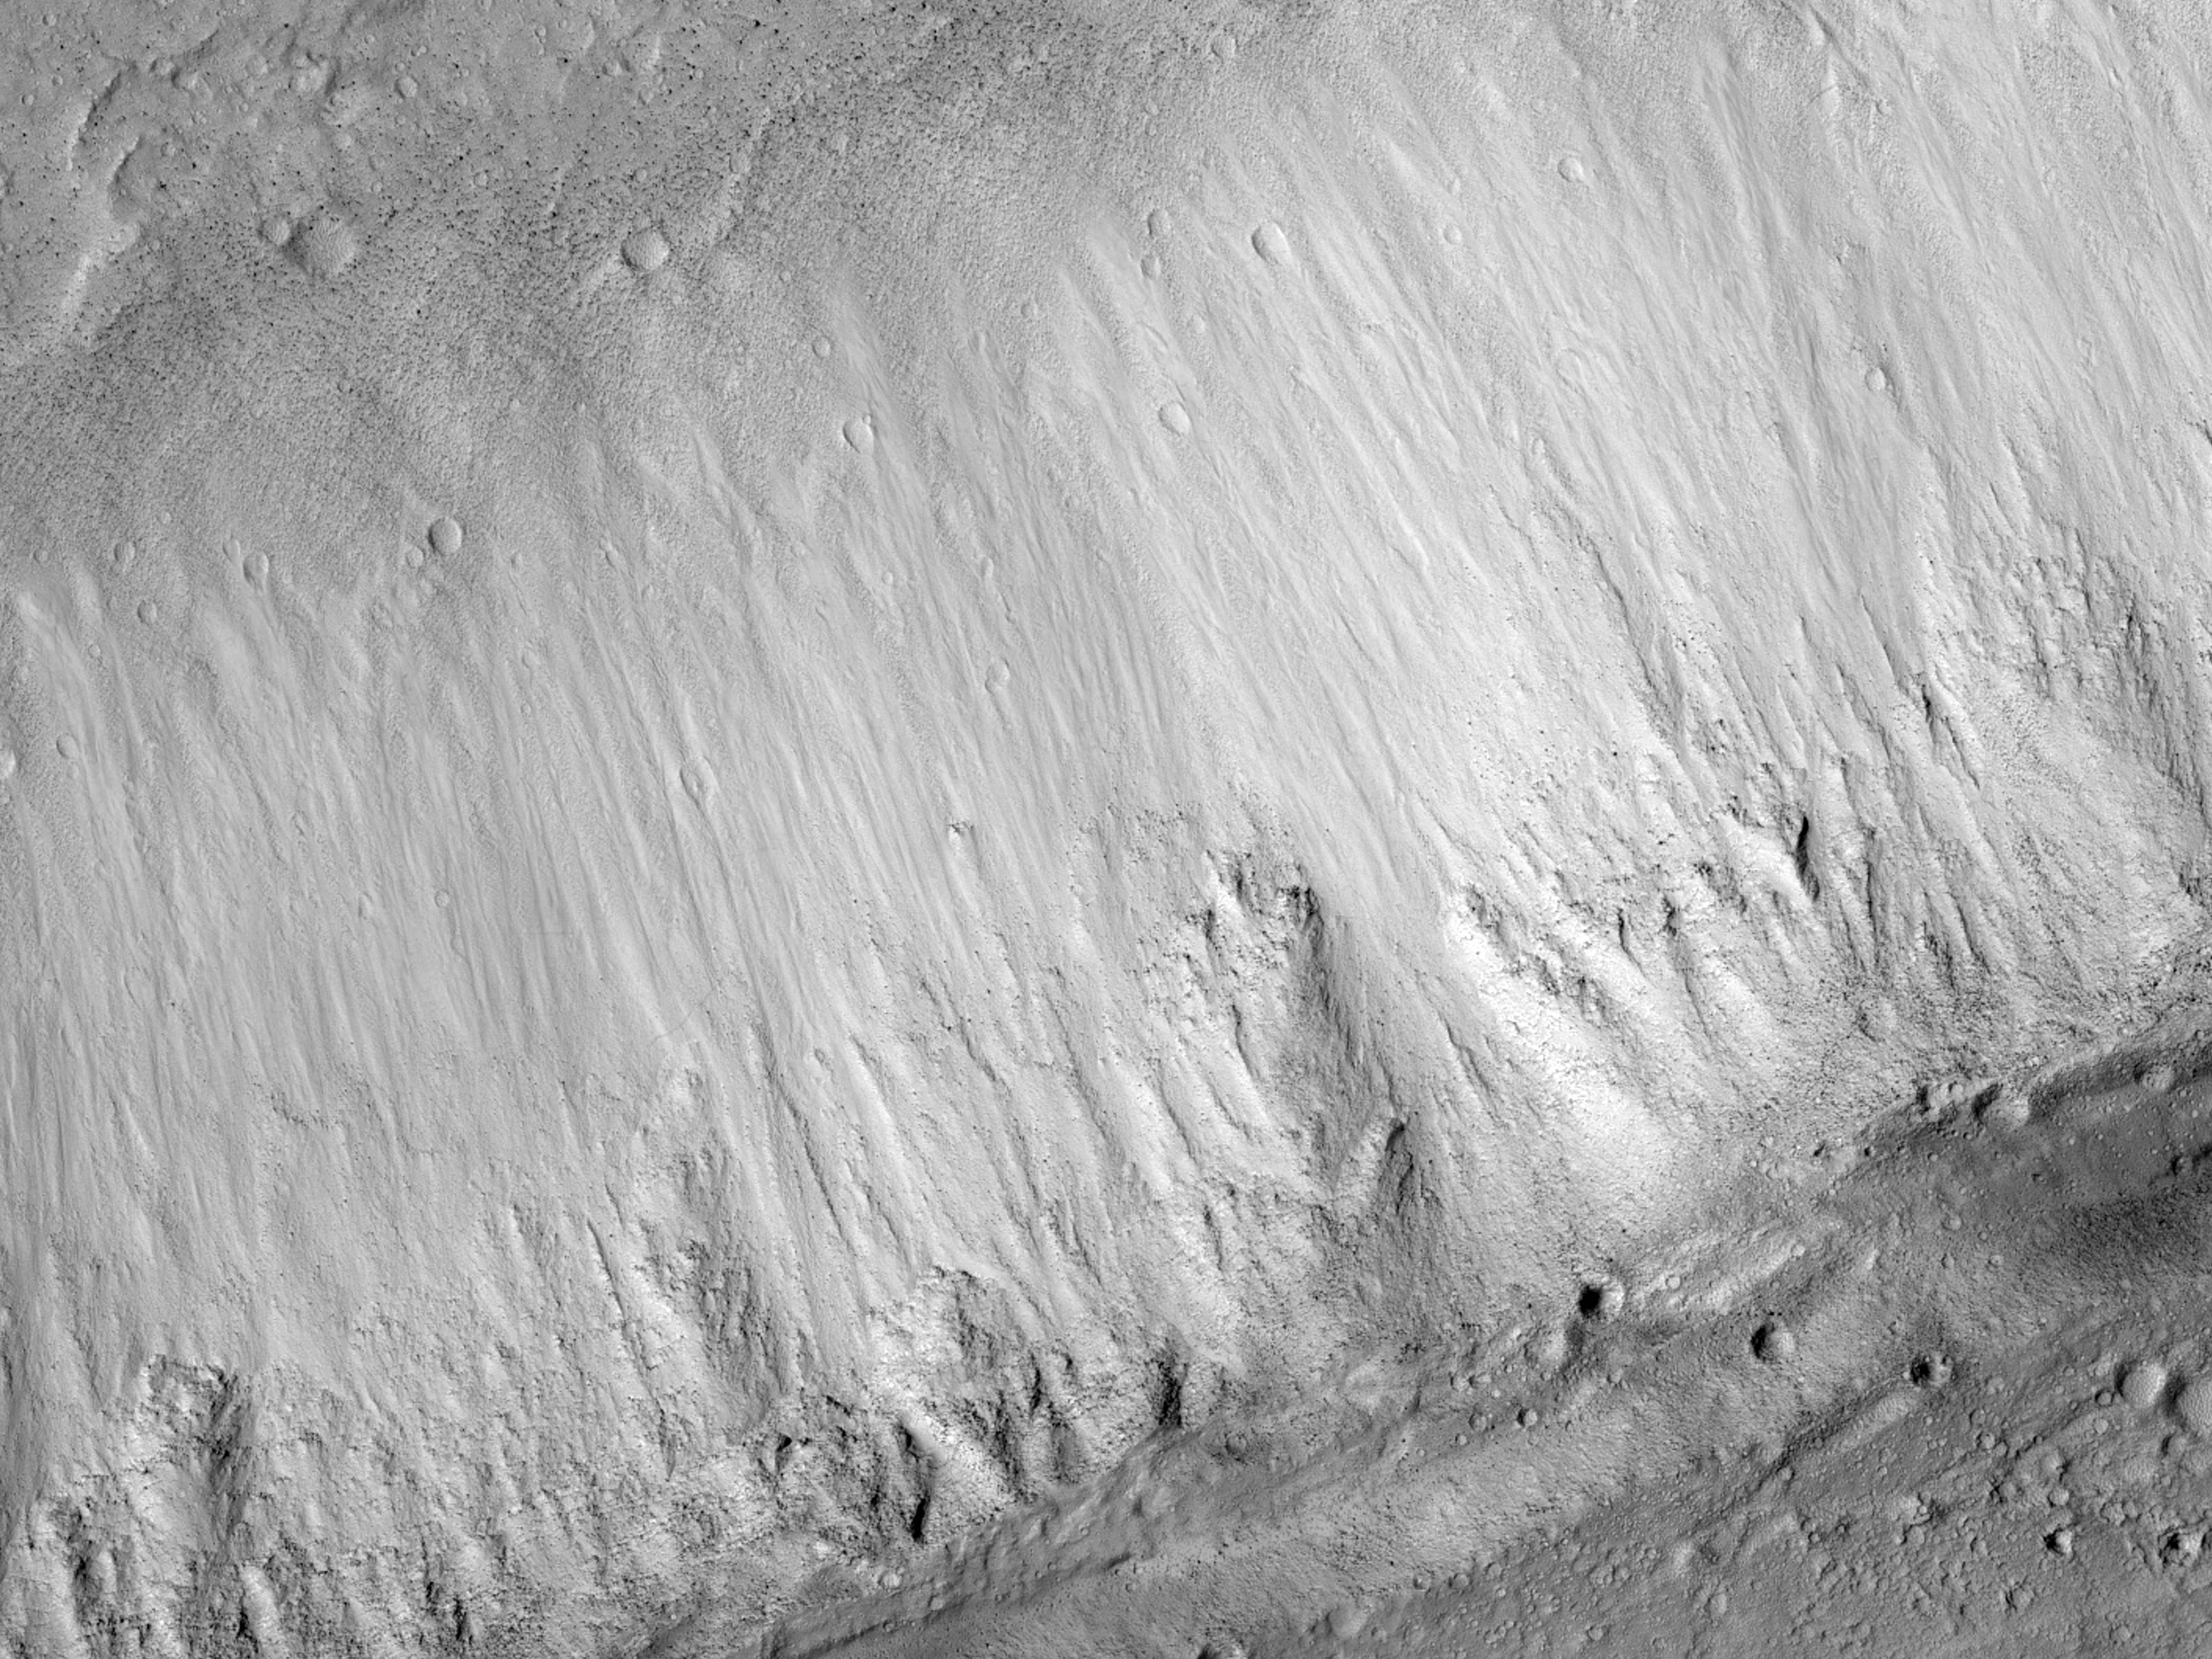 Slope Features in an Olympus Mons Caldera